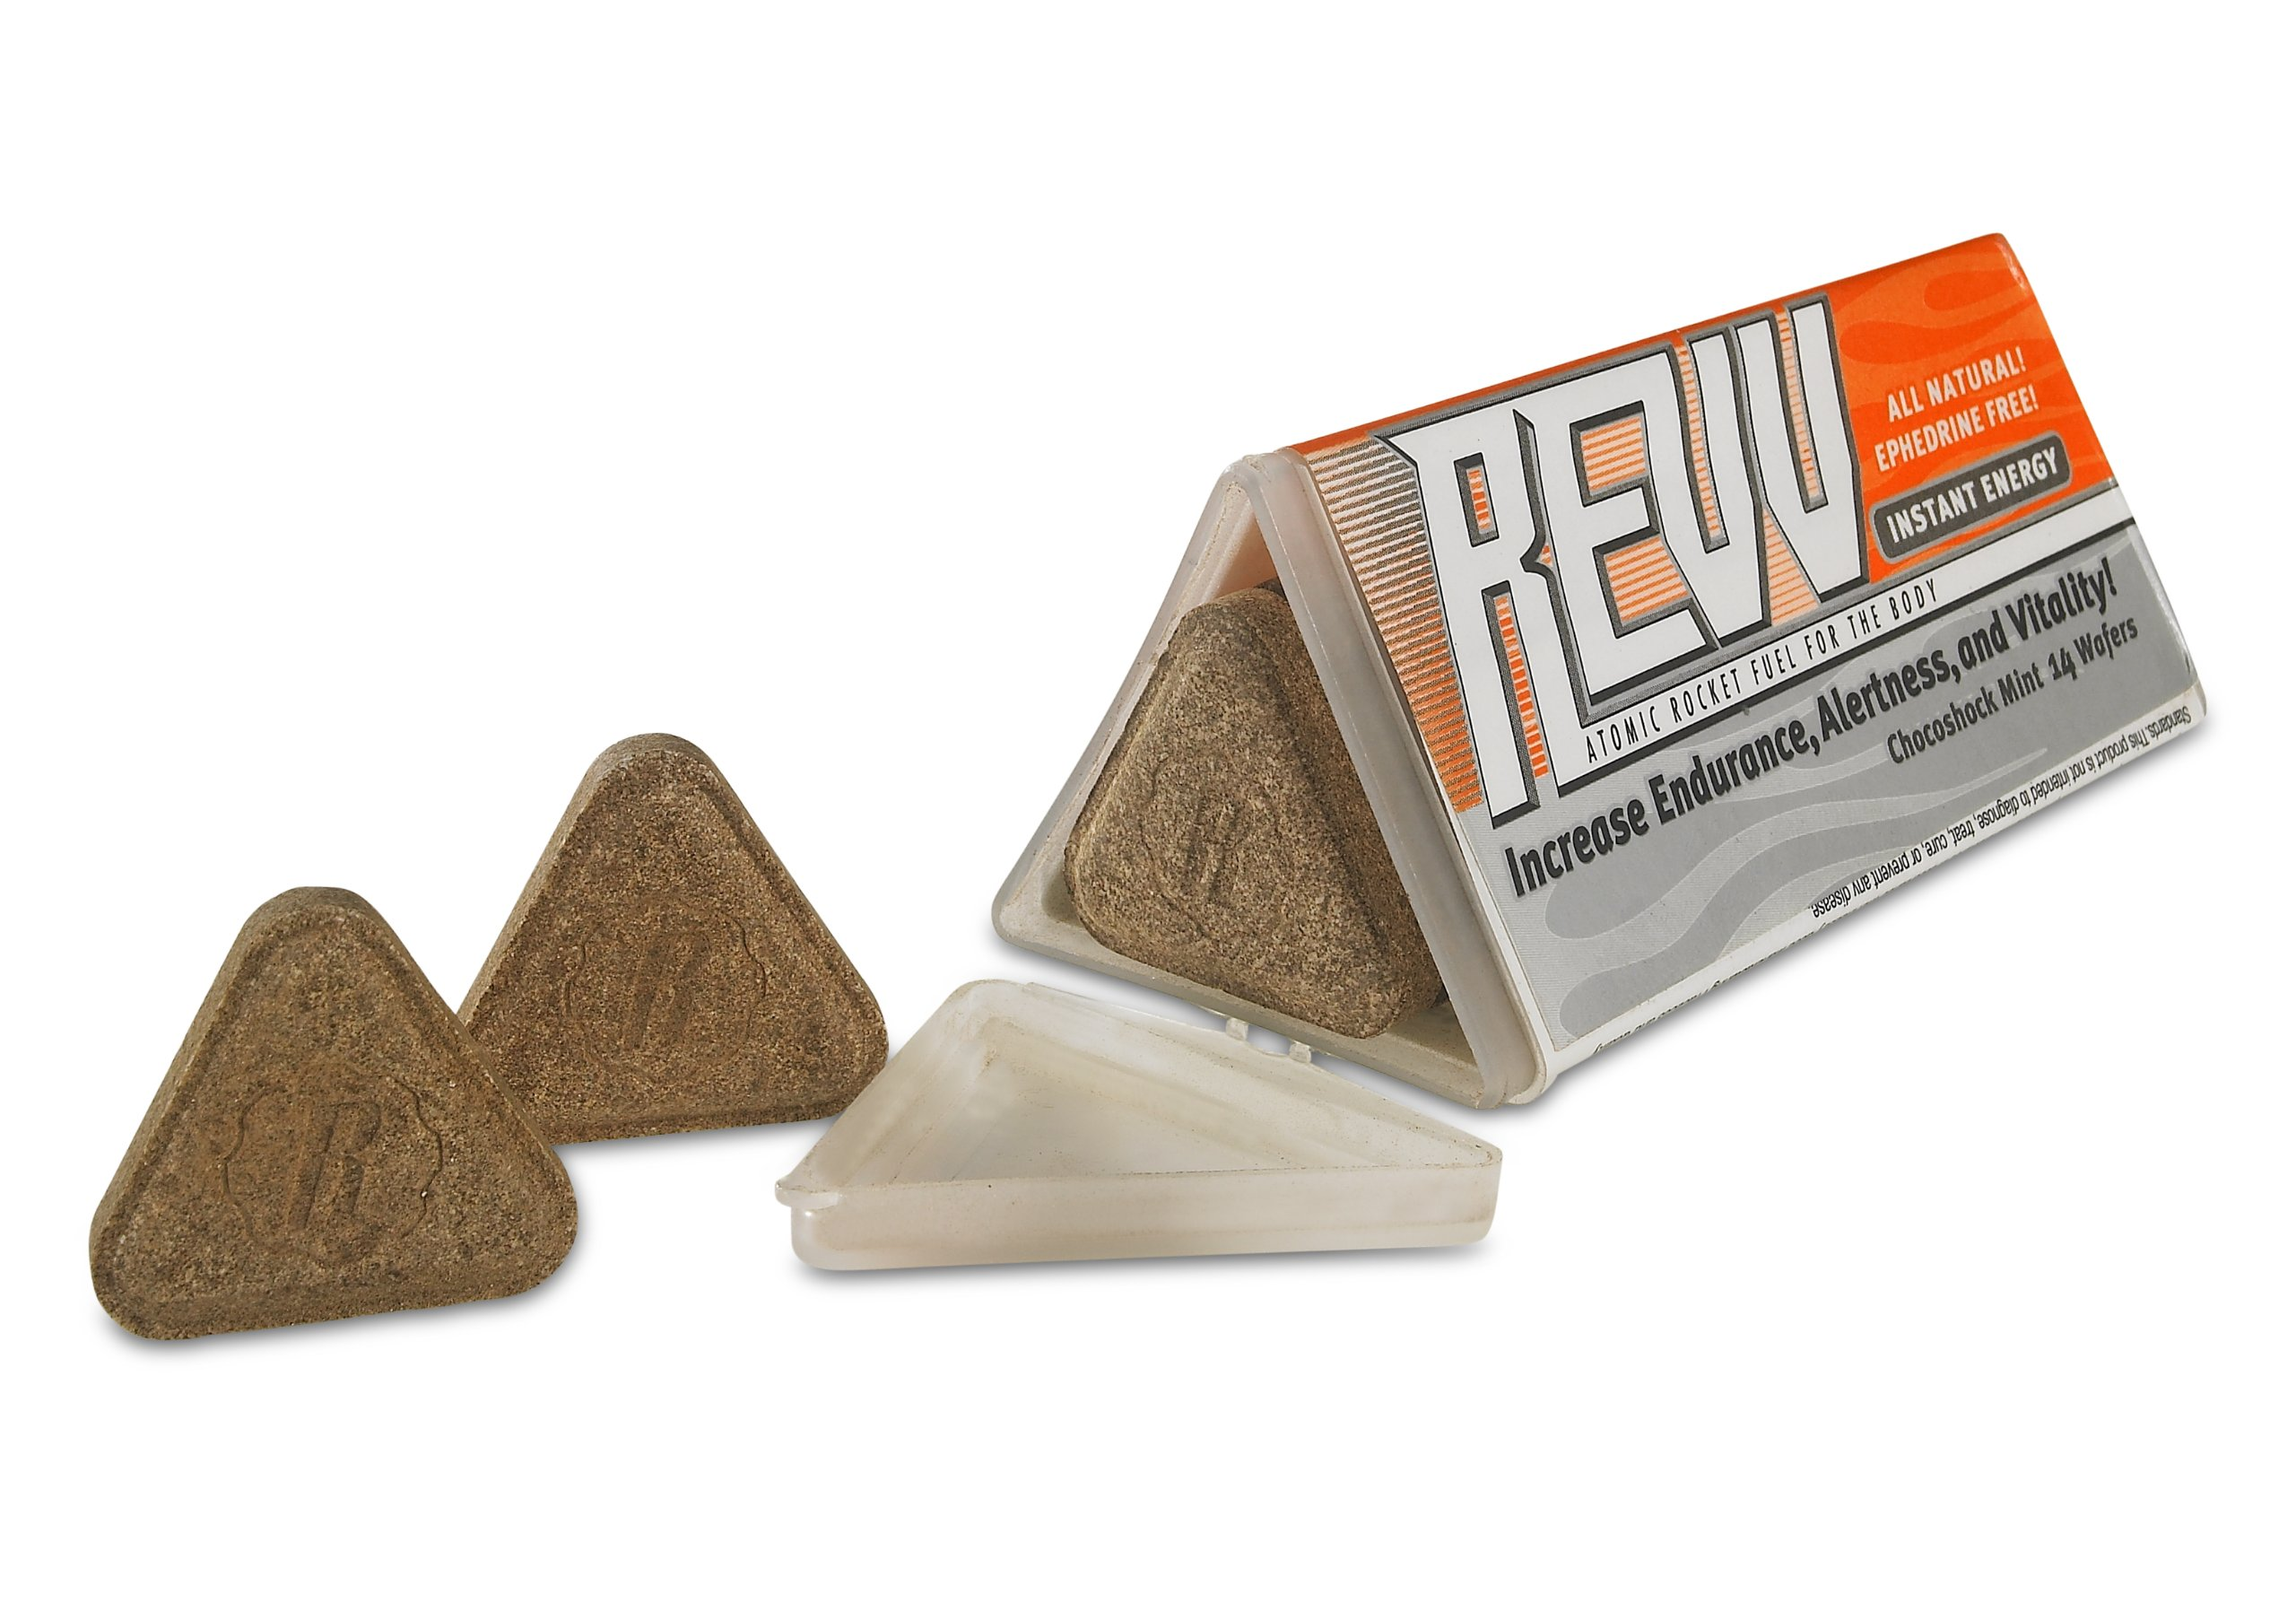 REVV Instant Energy - Good For You Natural Energy Booster - 1 Month Supply